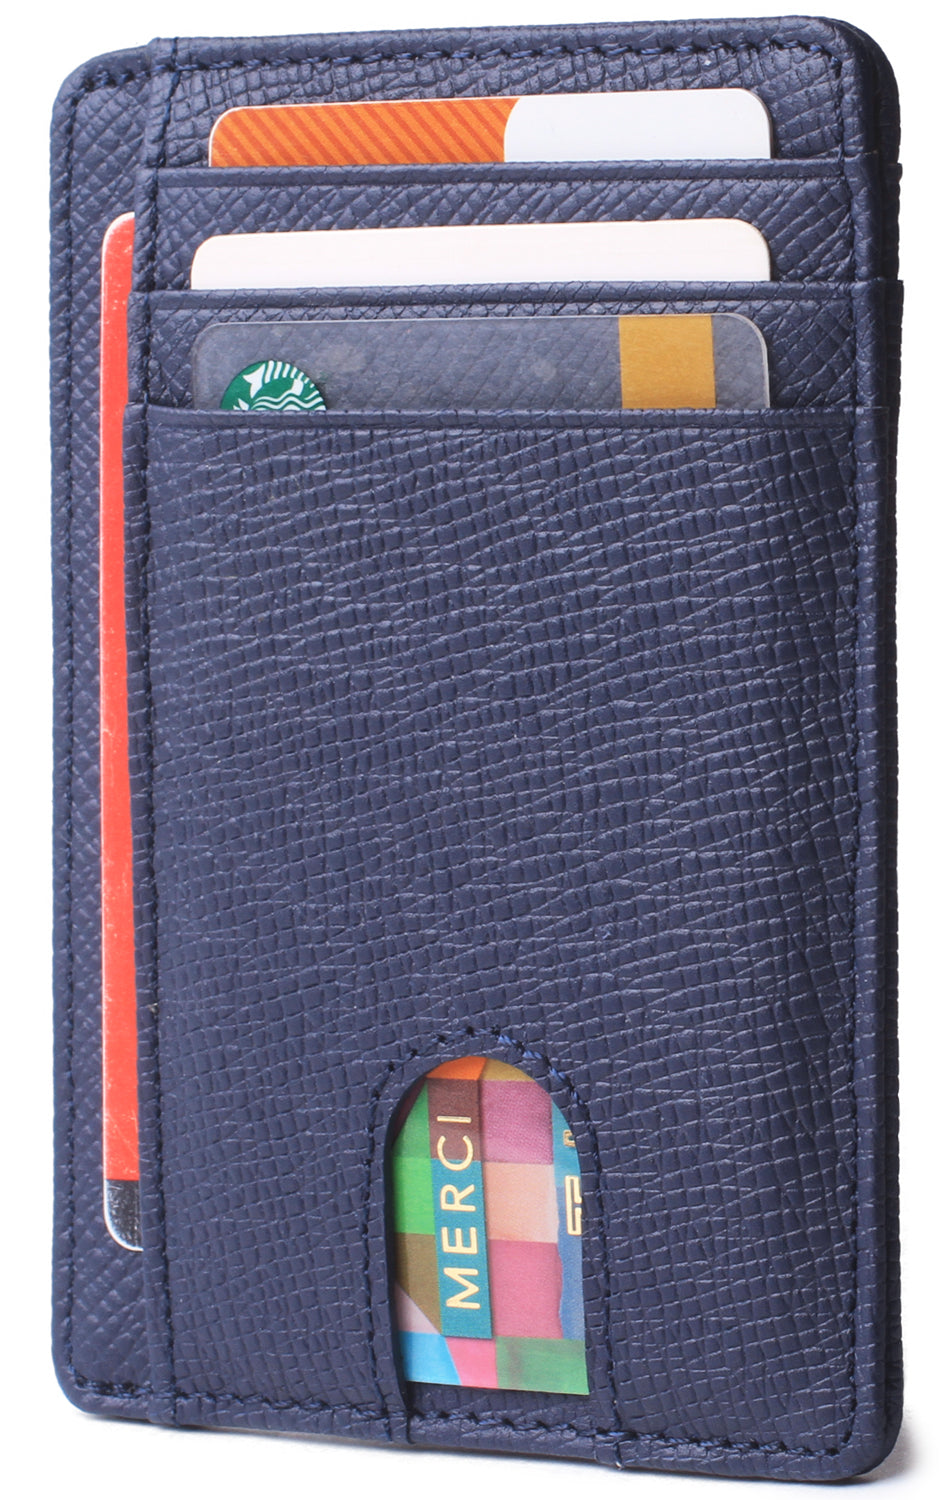 Slim Minimalist Front Pocket RFID Blocking Leather Wallets for Men & Women BG2288 Cross Blue - Borgasets